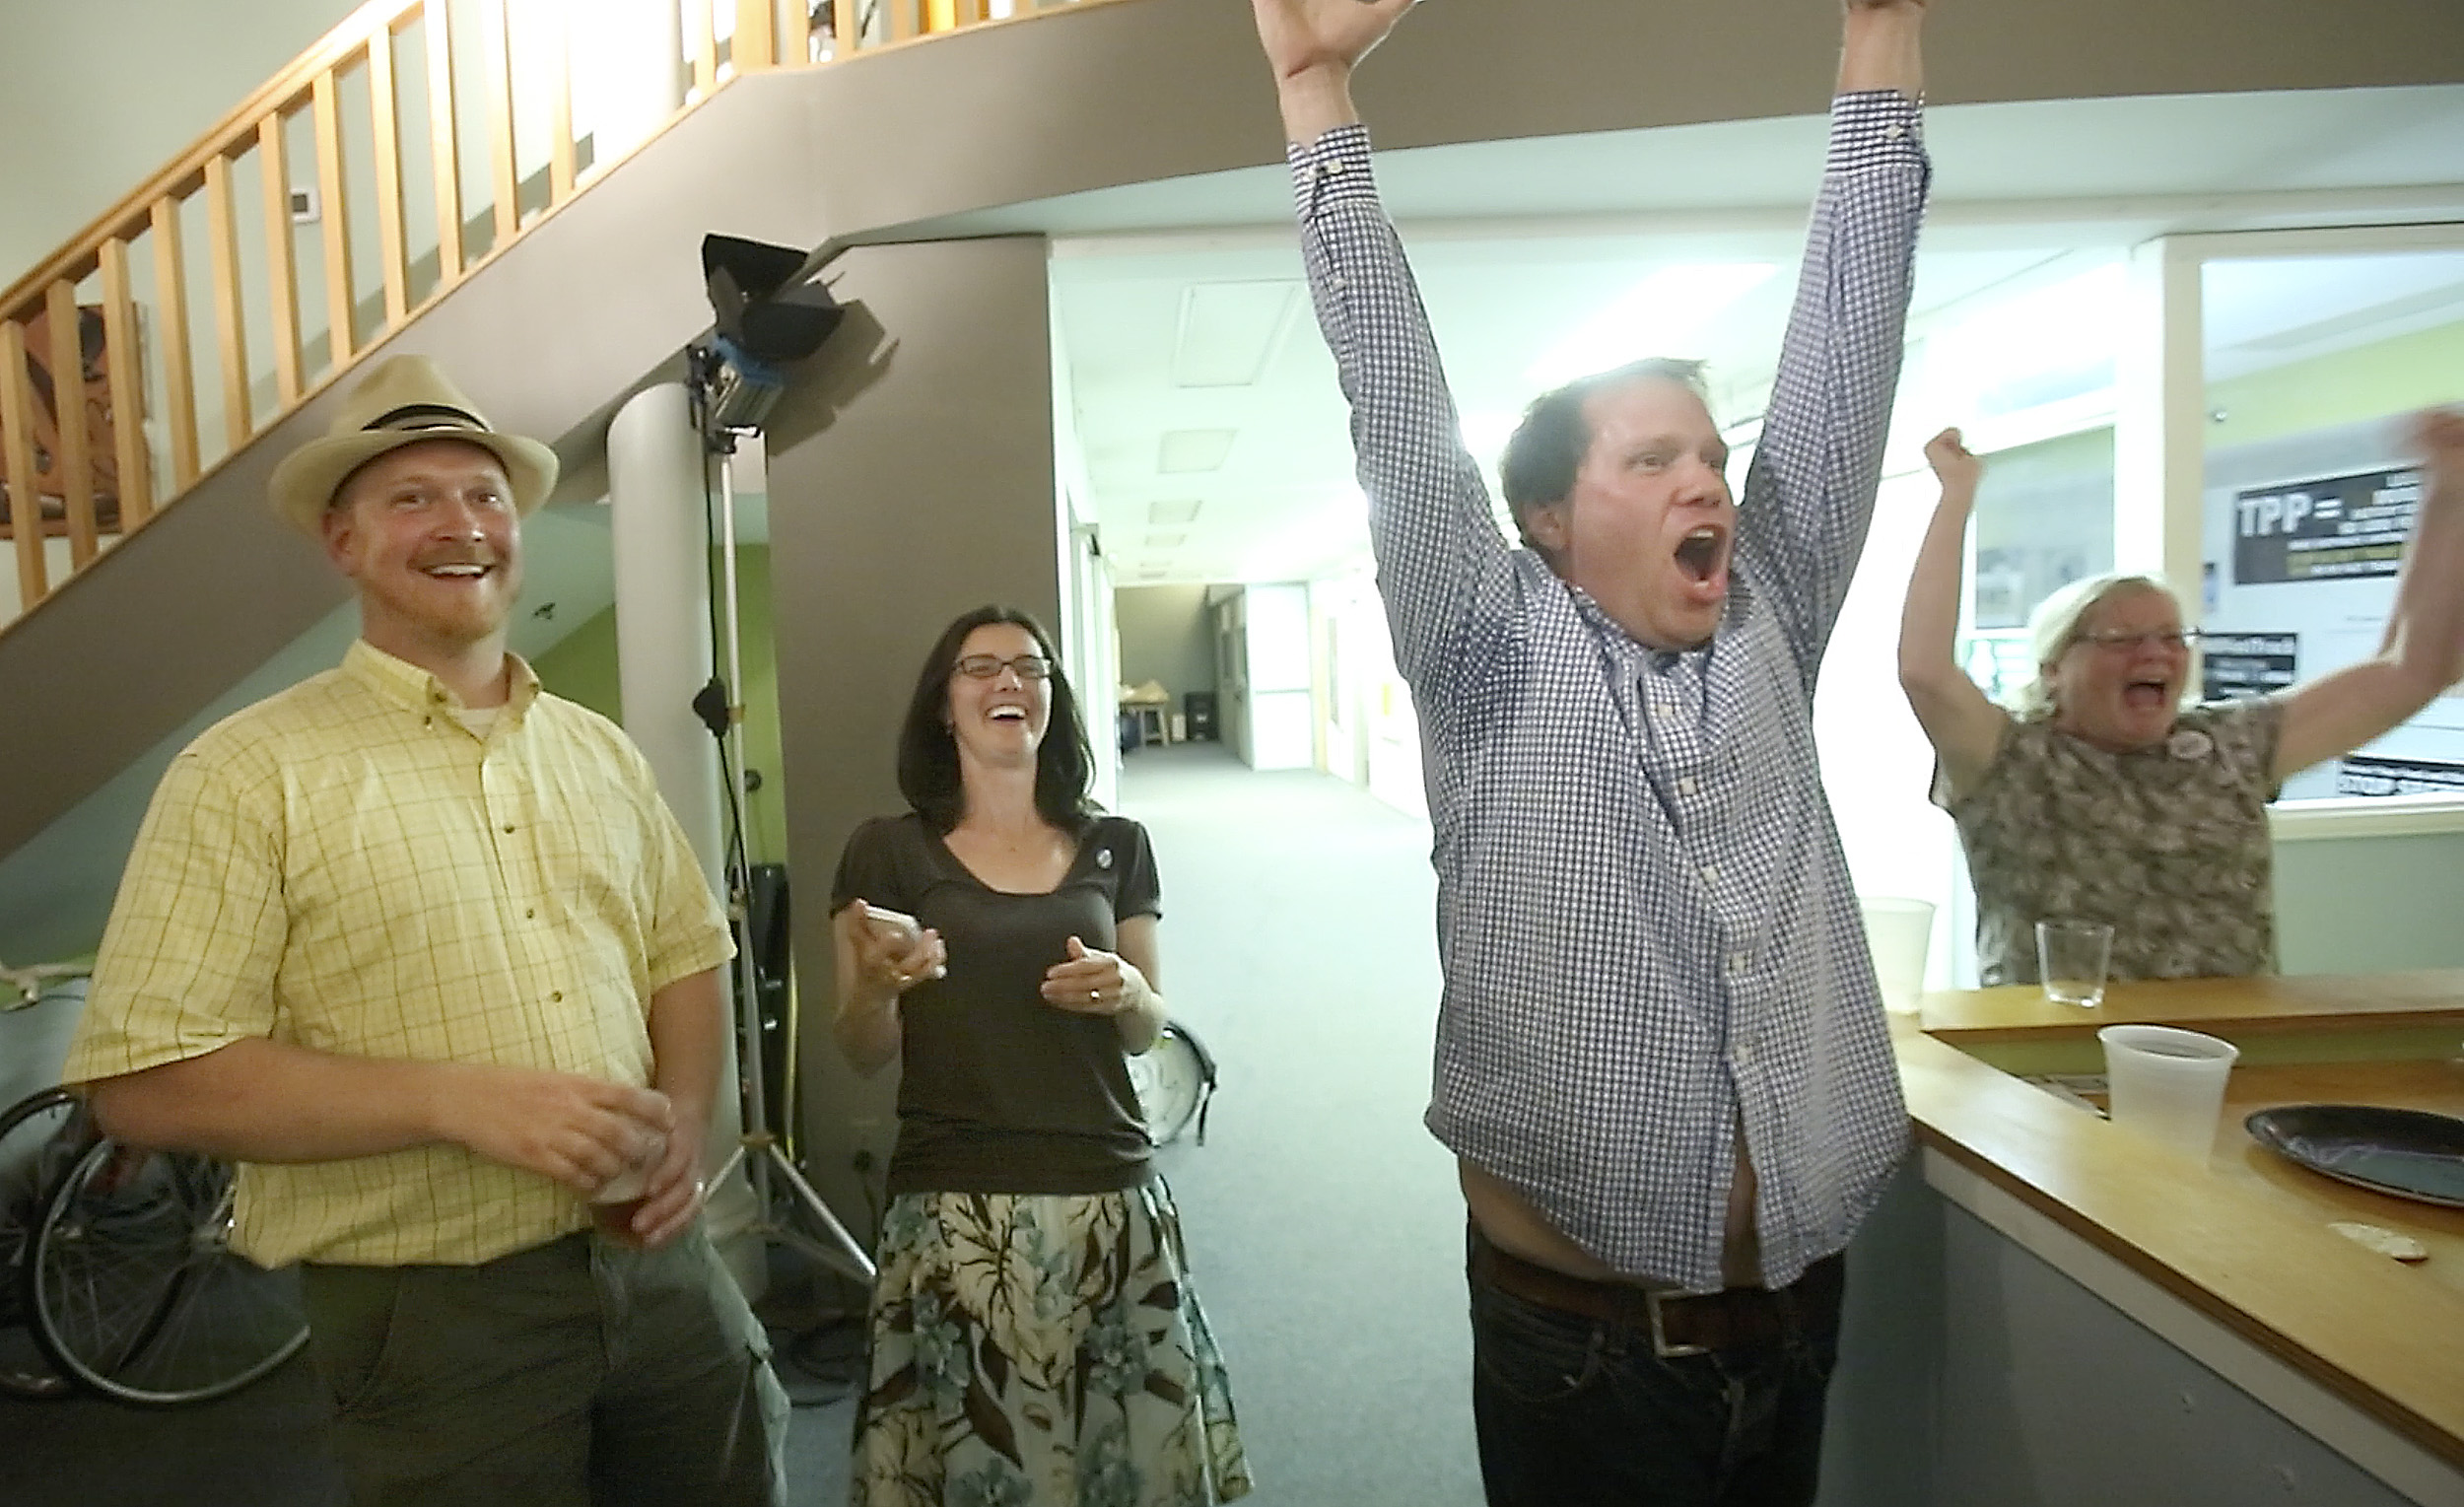 Chris Moore, right, a volunteer with the Yes on 1 campaign, his wife Bree LaCasse, center and councilor David Marshall celebrate victory in Portland for the campaign that sought to save Congress Square Plaza from being sold for development.